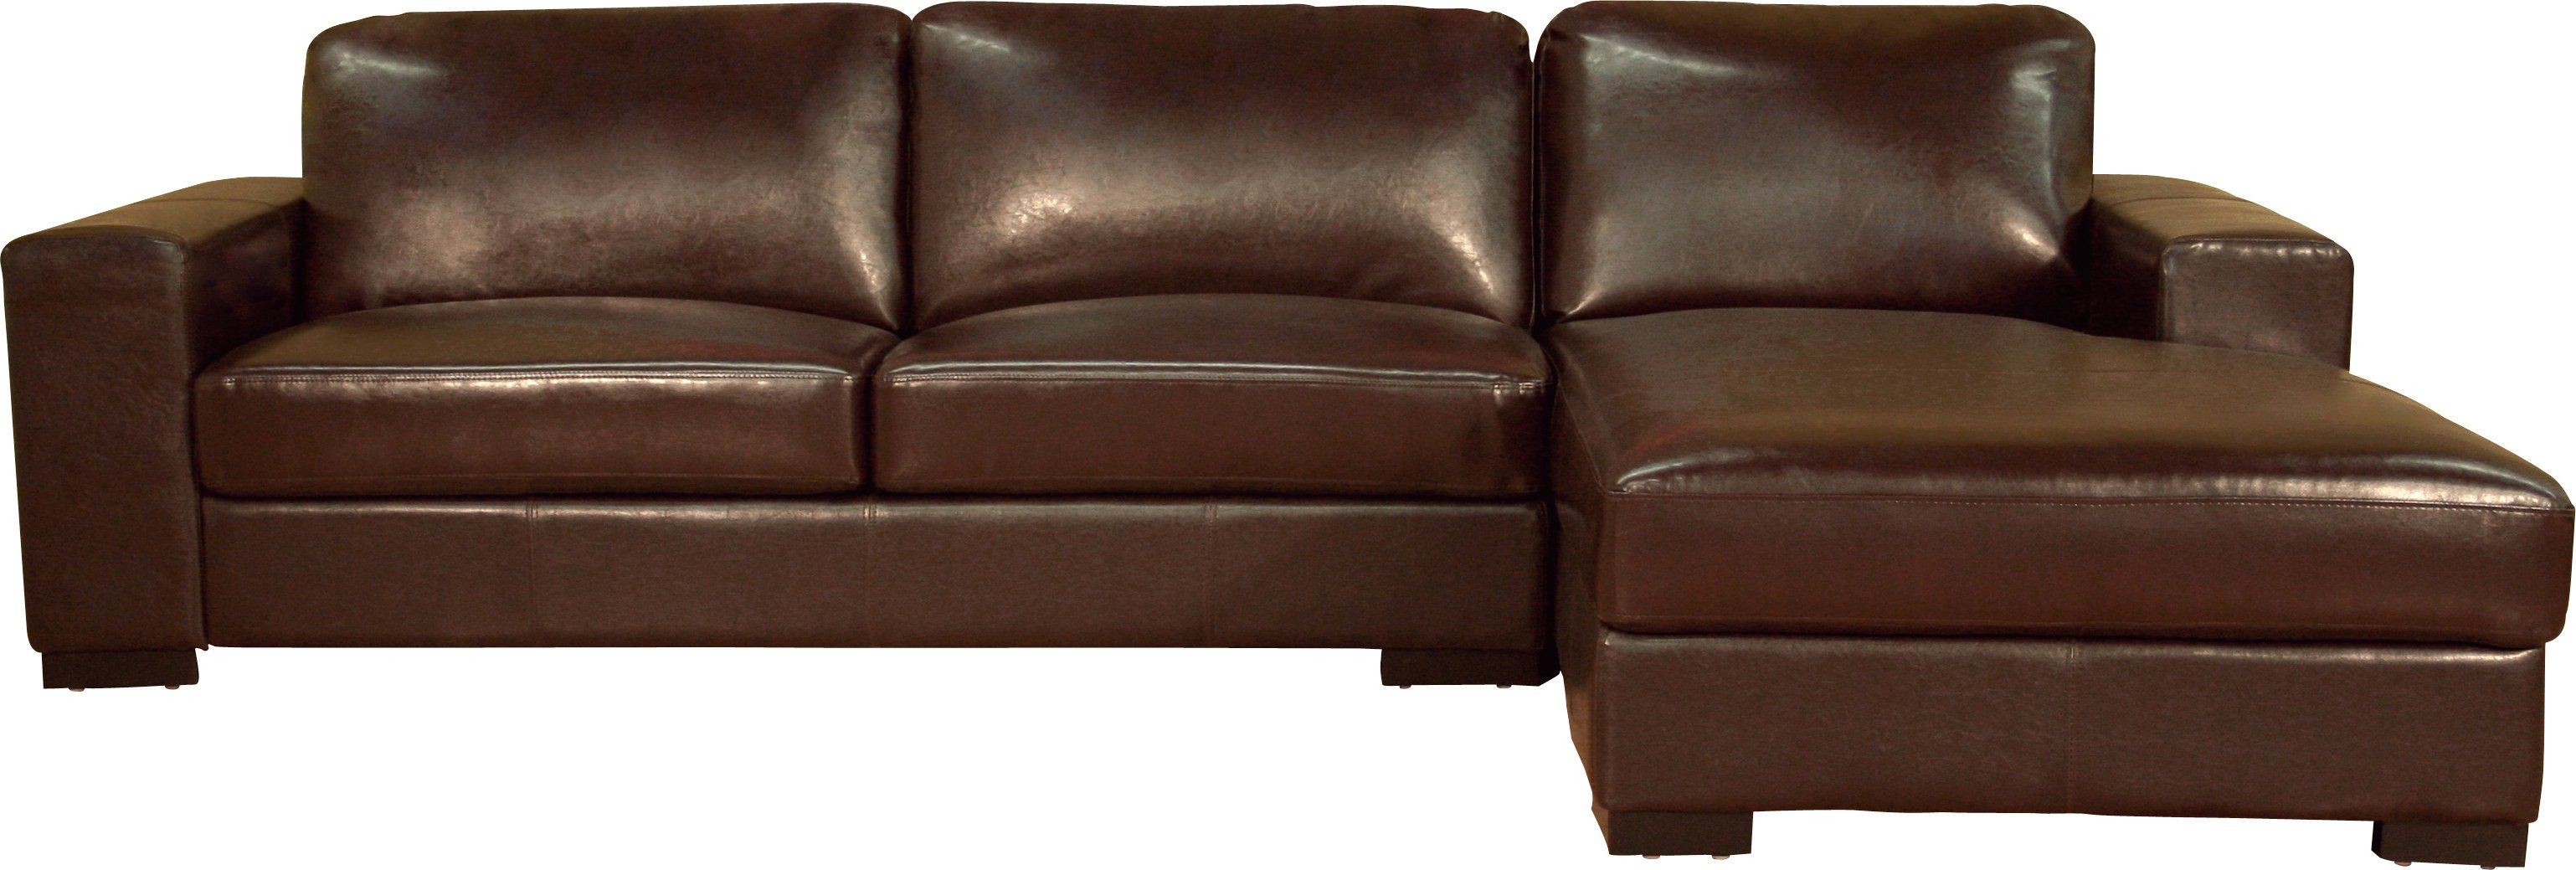 leather sectional sleeper sofa with chaise ikea sectional sofa | ikea ektorp sofa | curved couch NHRUGYE